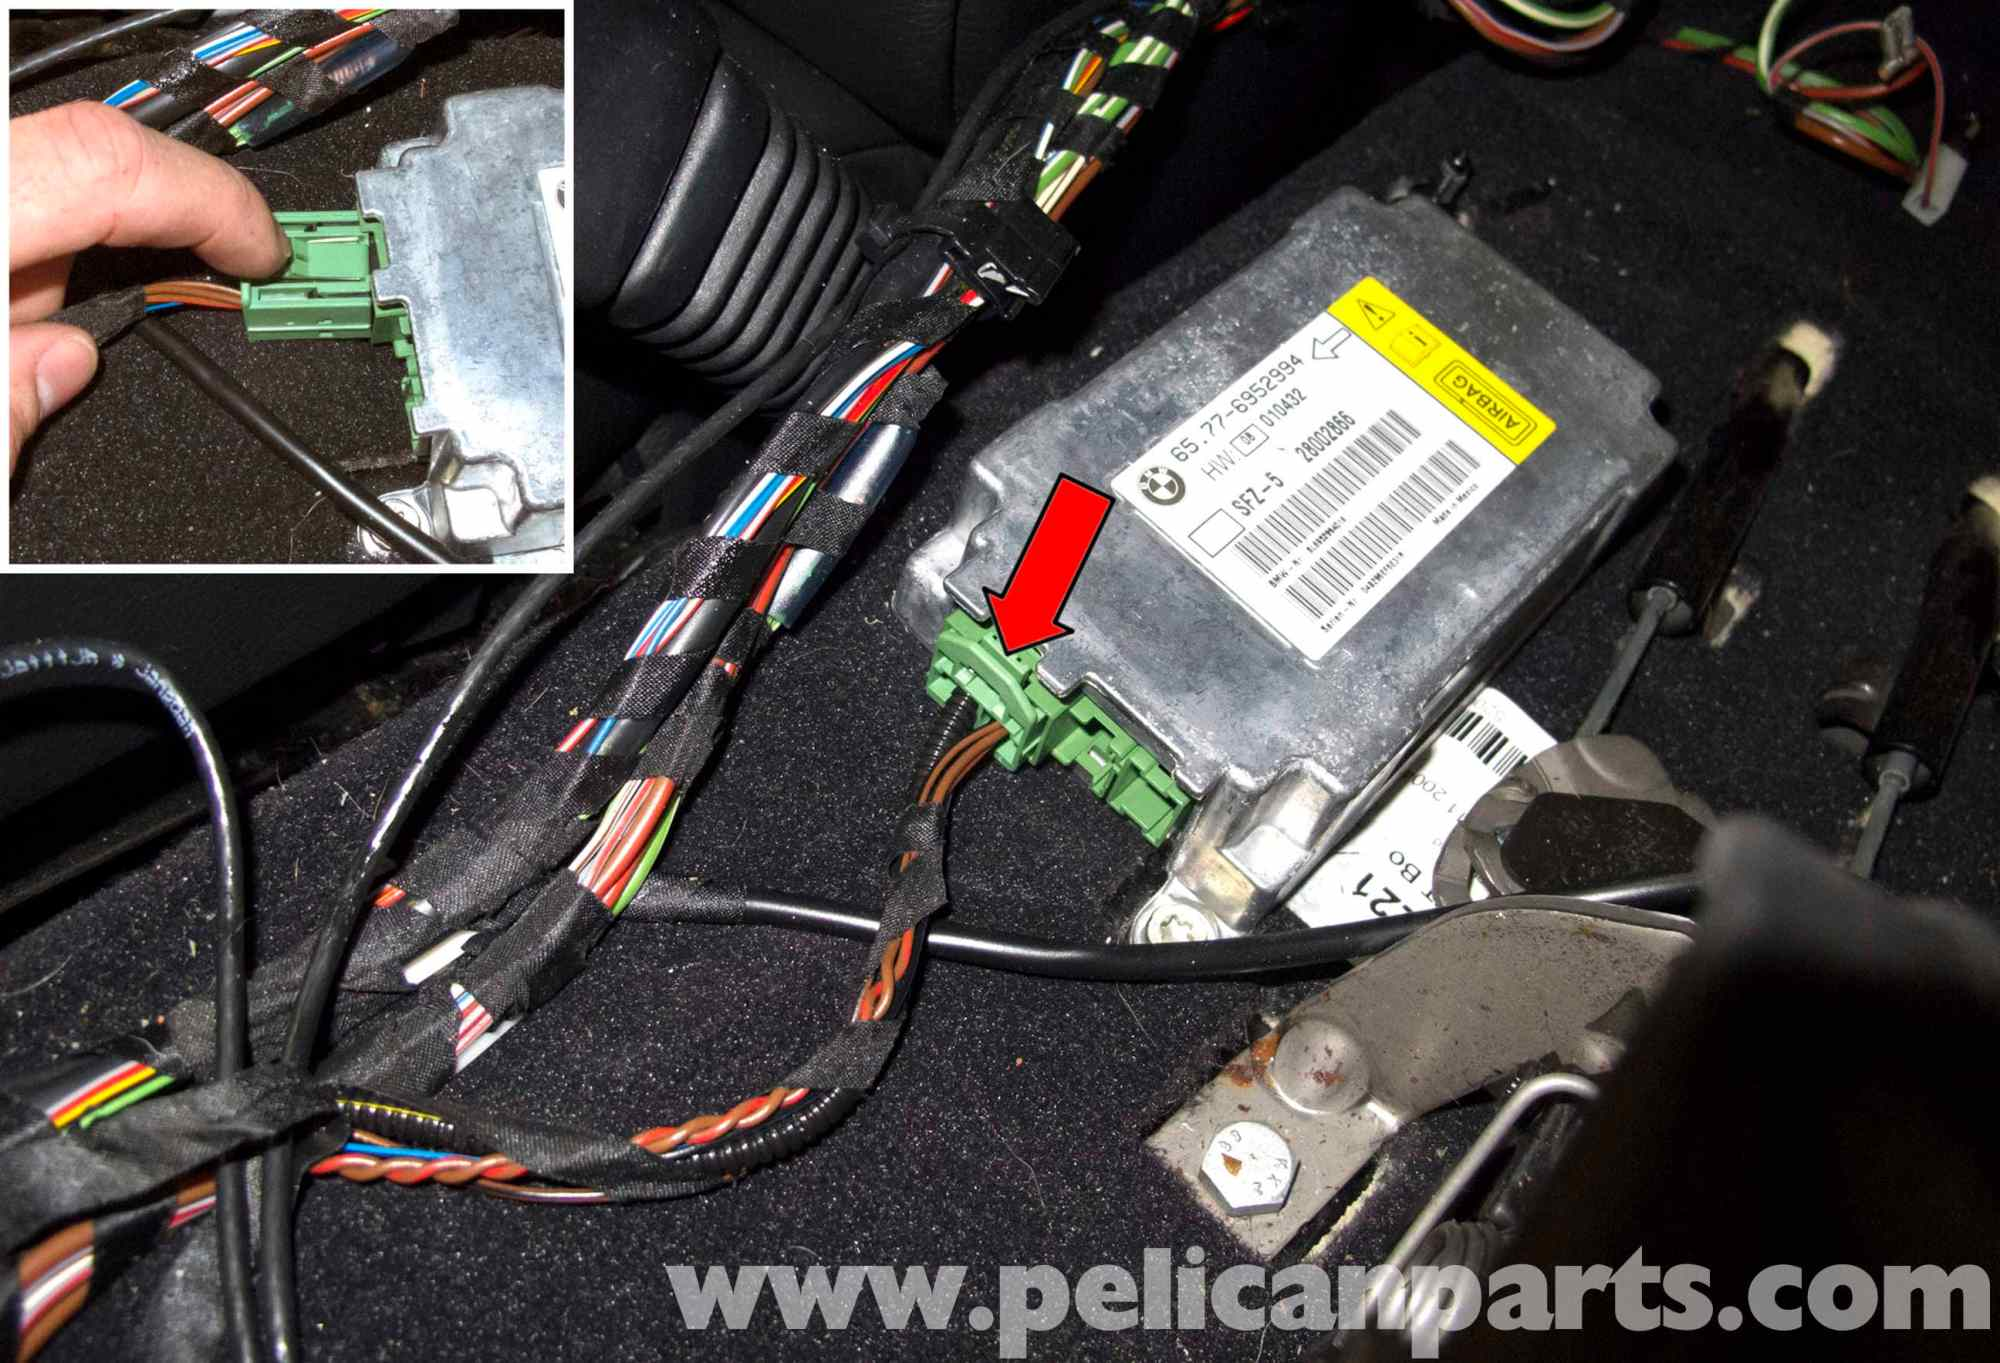 hight resolution of bmw e60 5 series airbag module blue tooth antenna and can wiring diagram